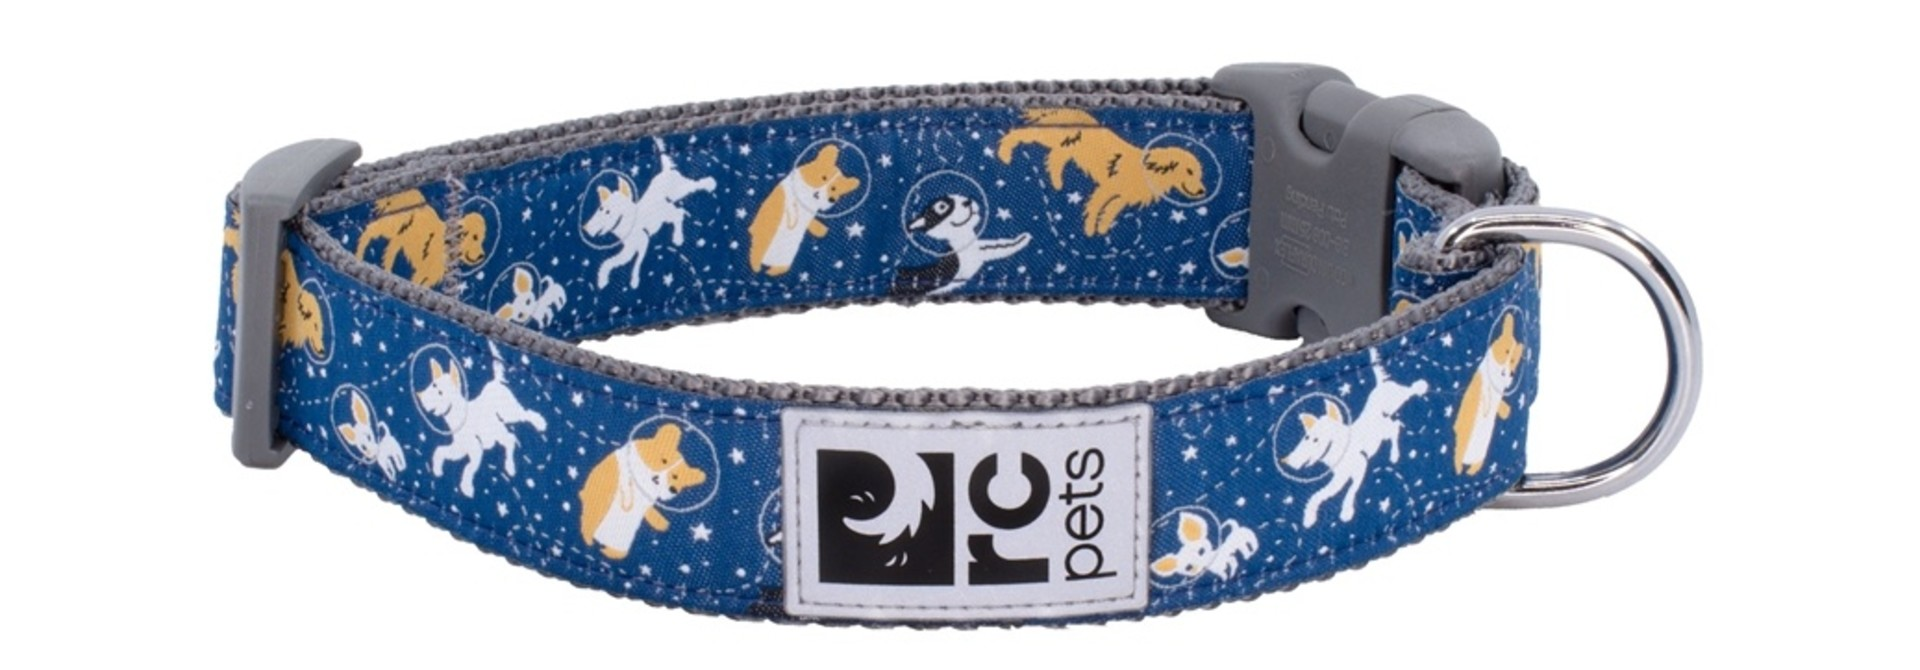 Clip Collar L1 Space Dogs